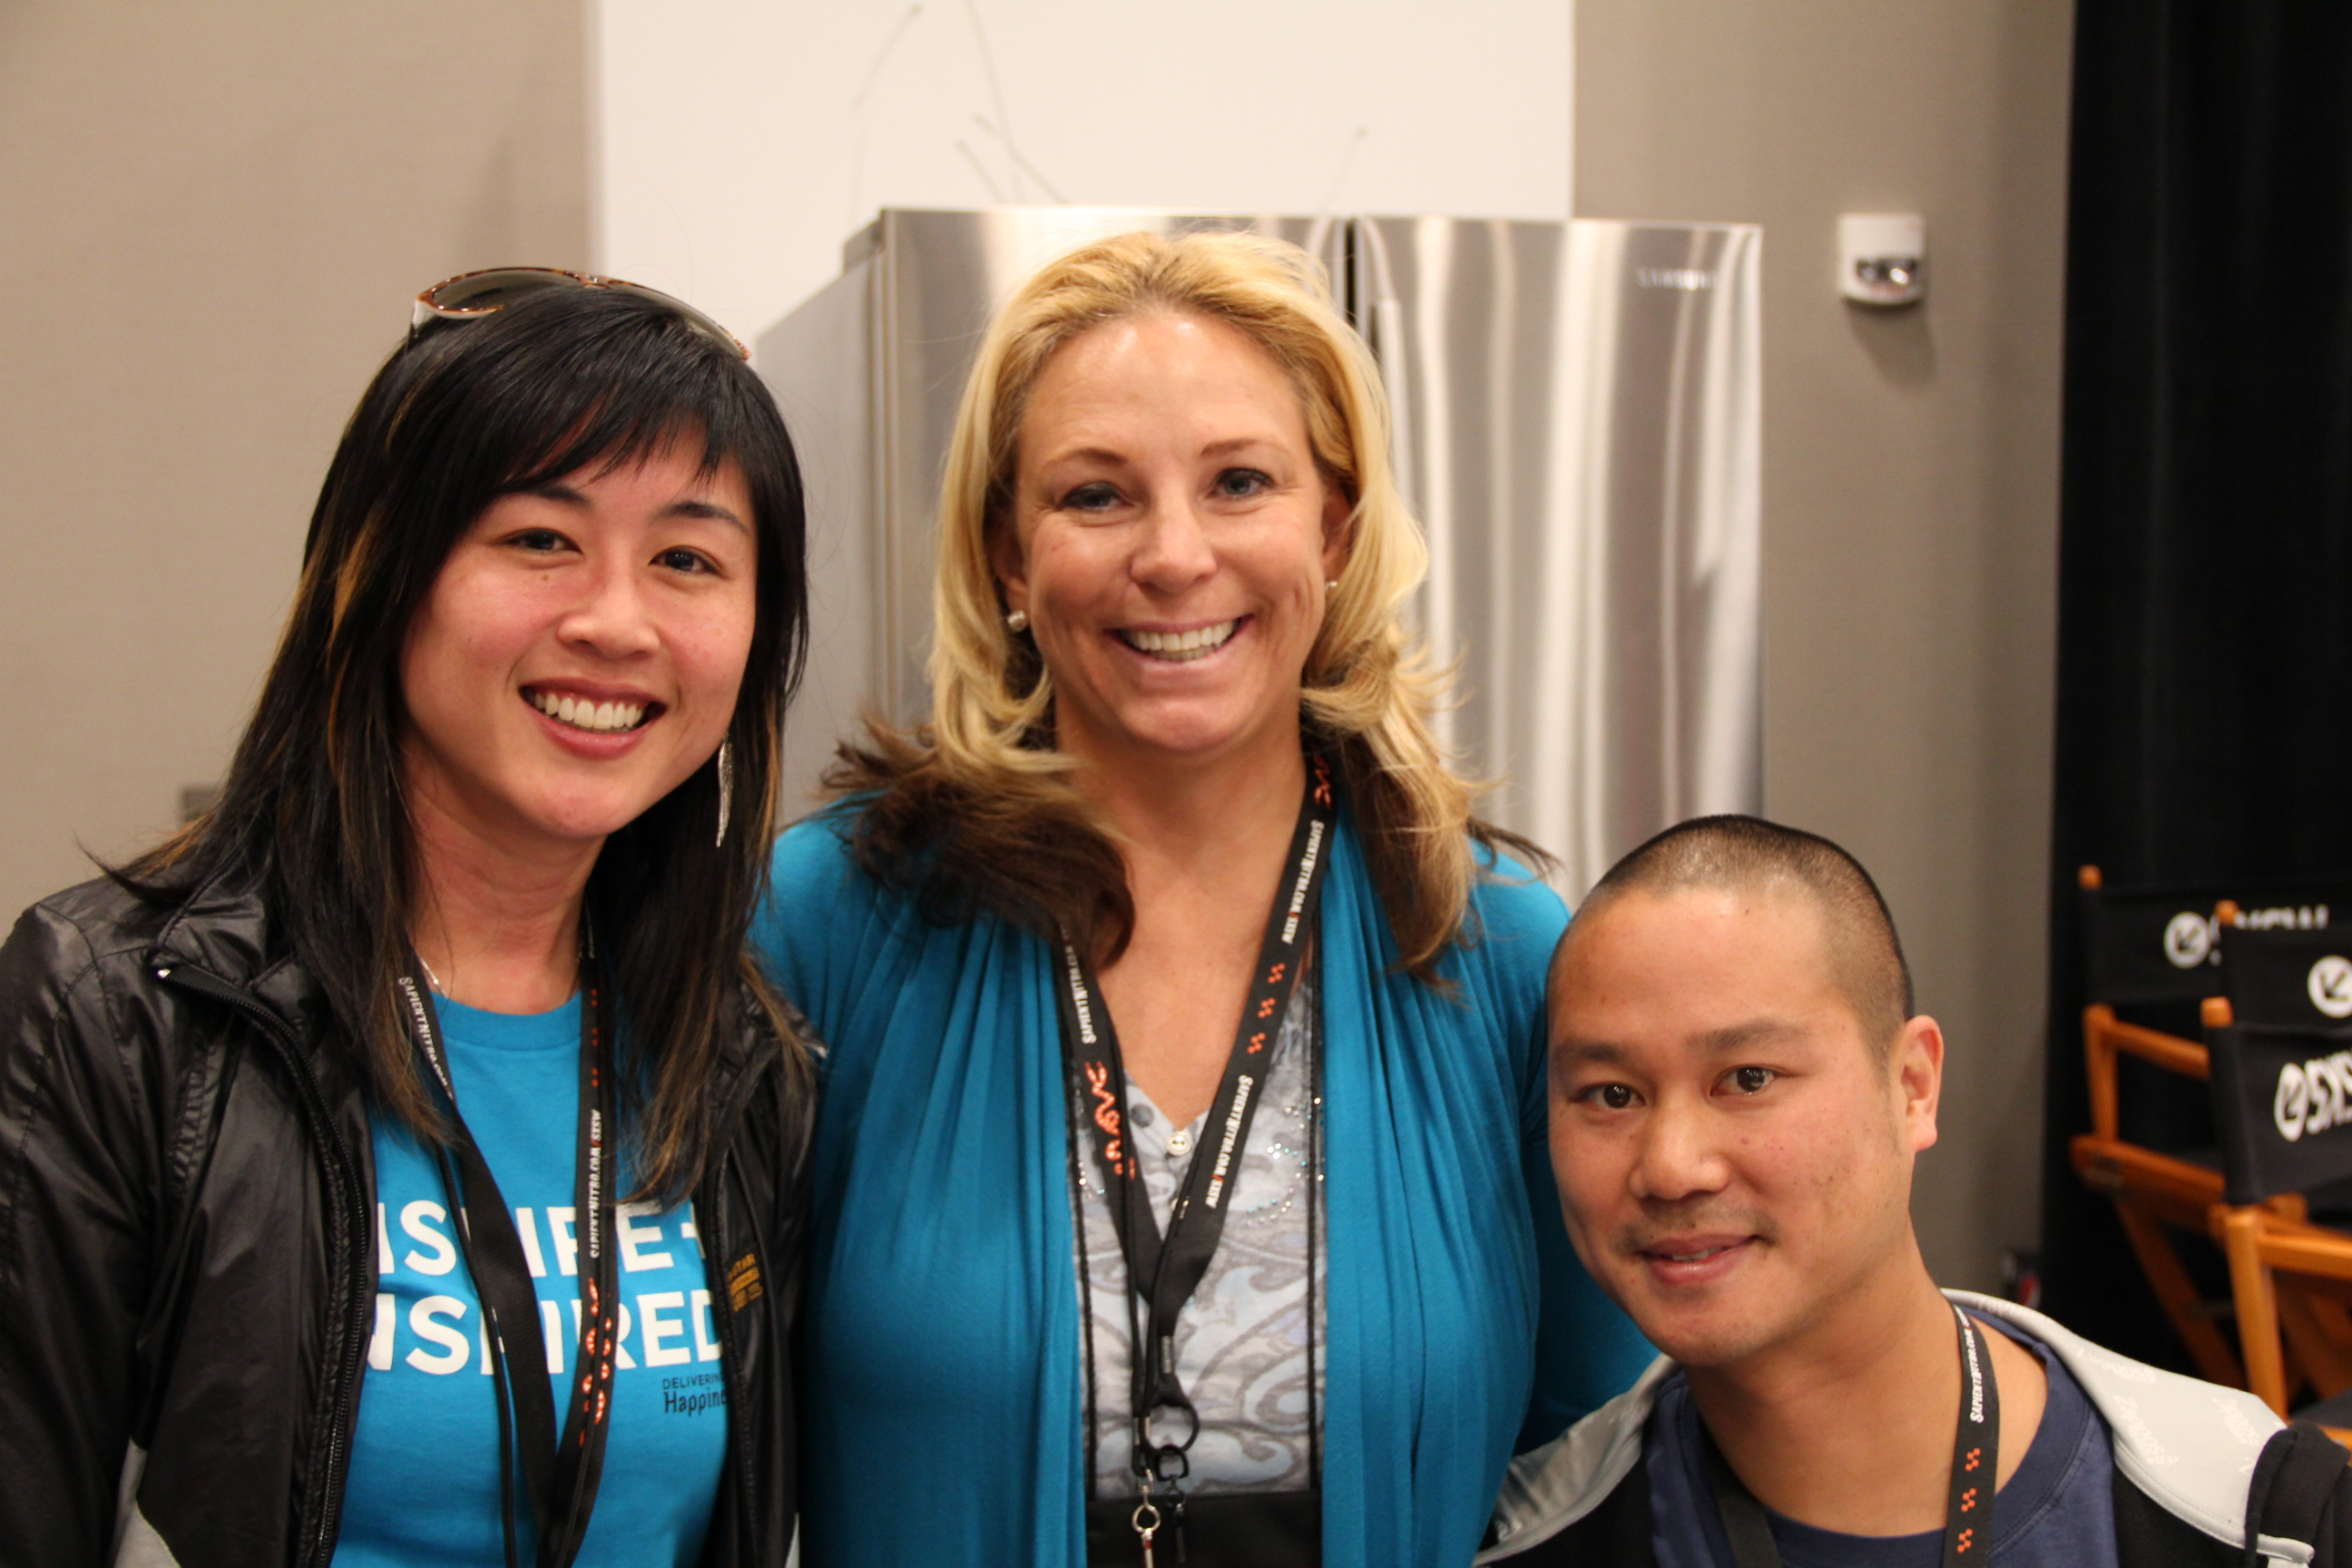 Zappos Announces New Consulting Company at SXSW: Happiness